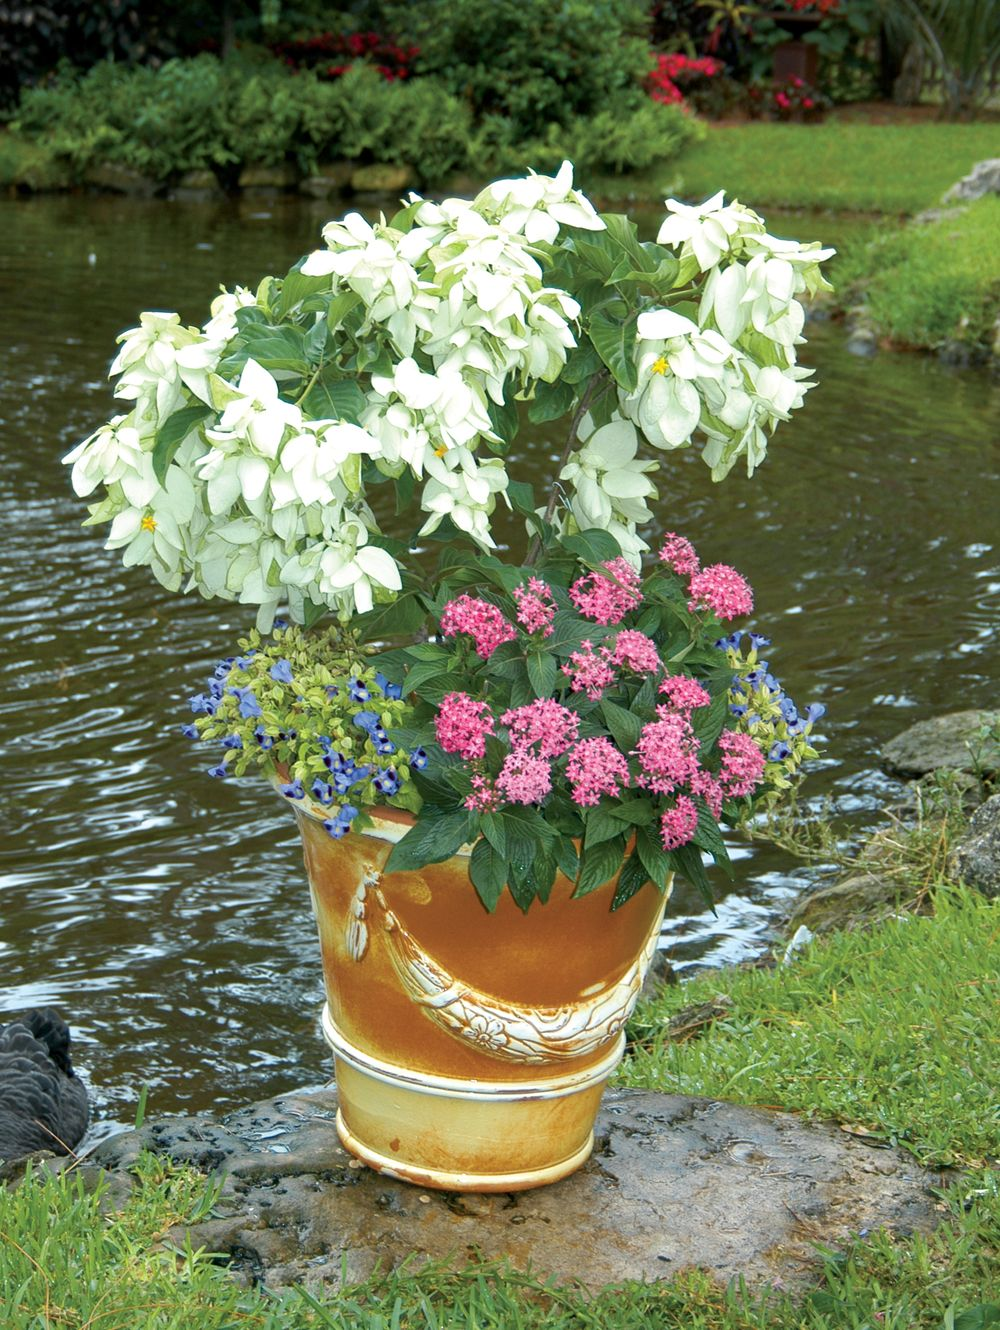 Musseanda frondosa forms the centerpiece and is surrounded by pink ...